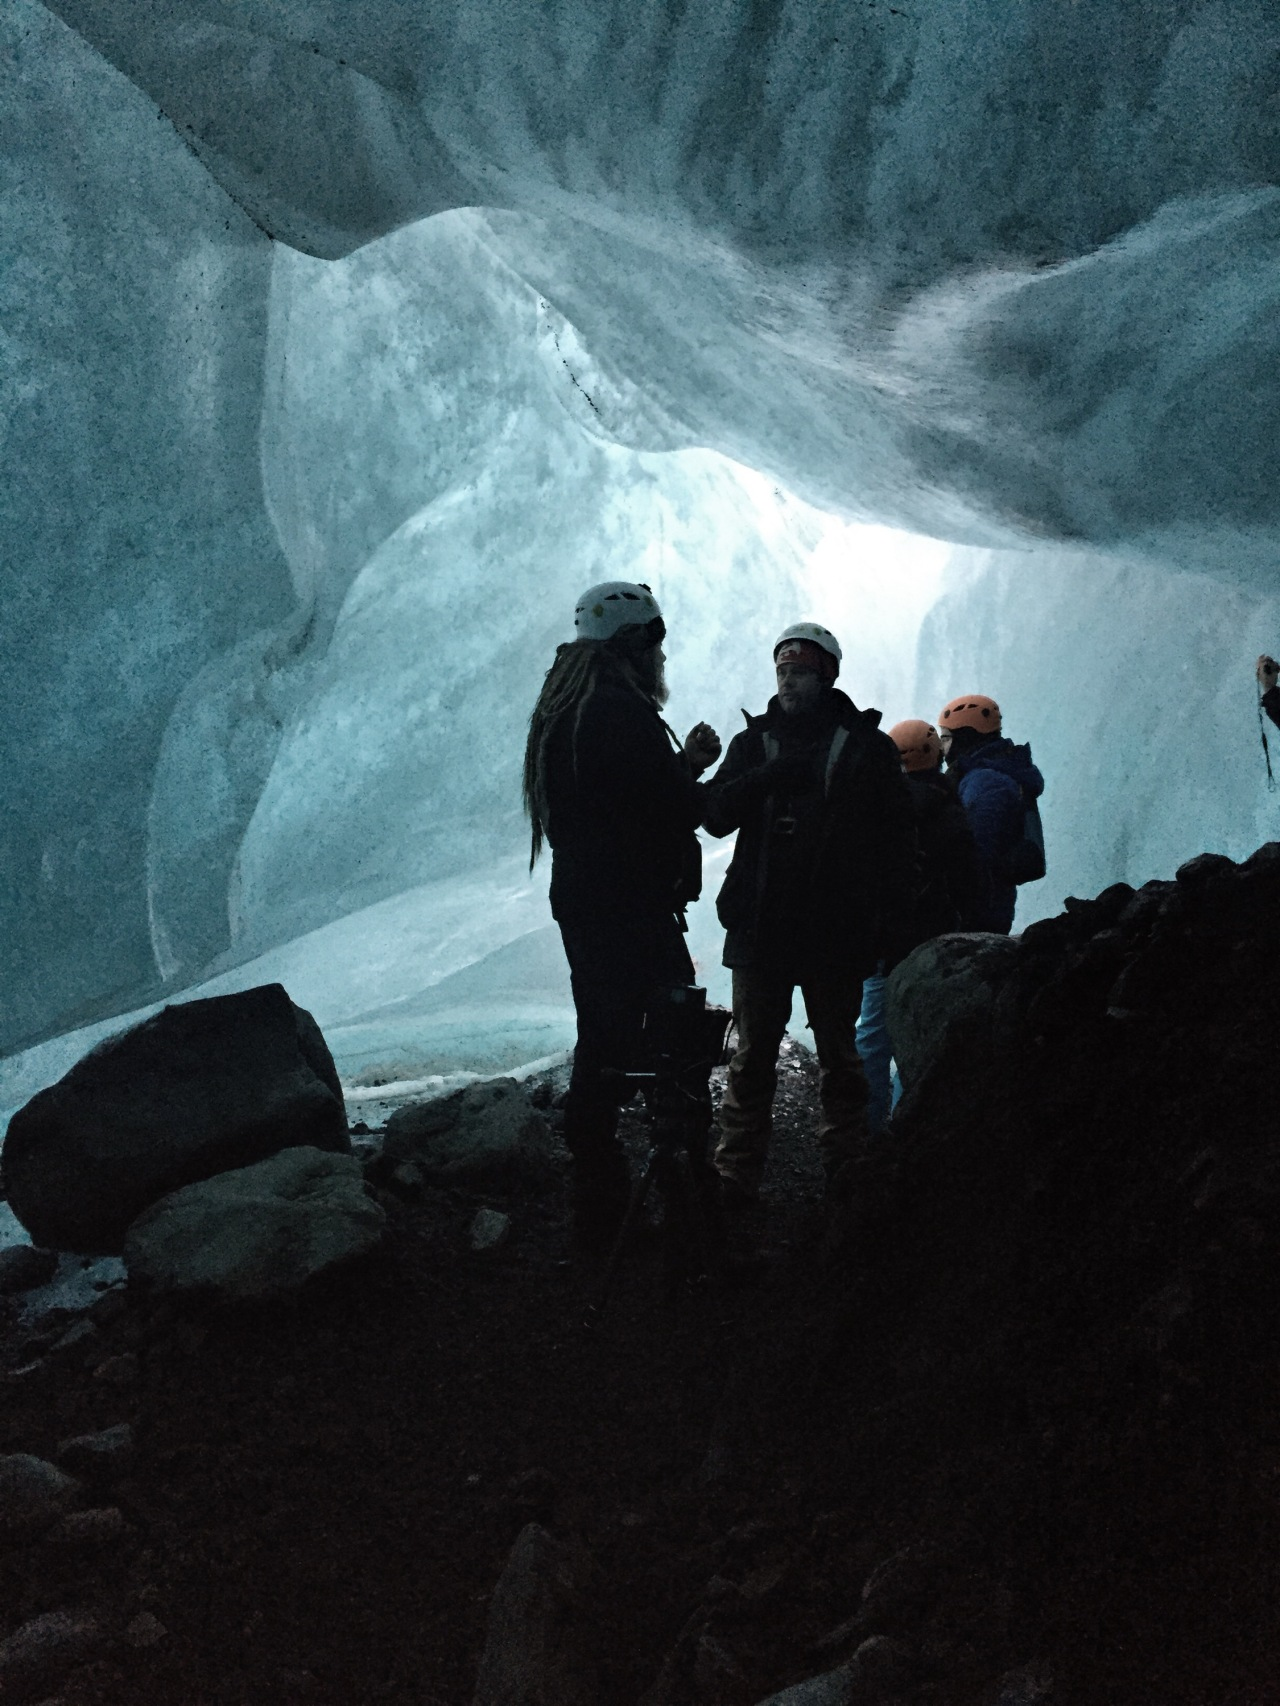 Iceland – Glaciers, Ice Caves, Icebergs and Black Sand Beaches … all in a days work!